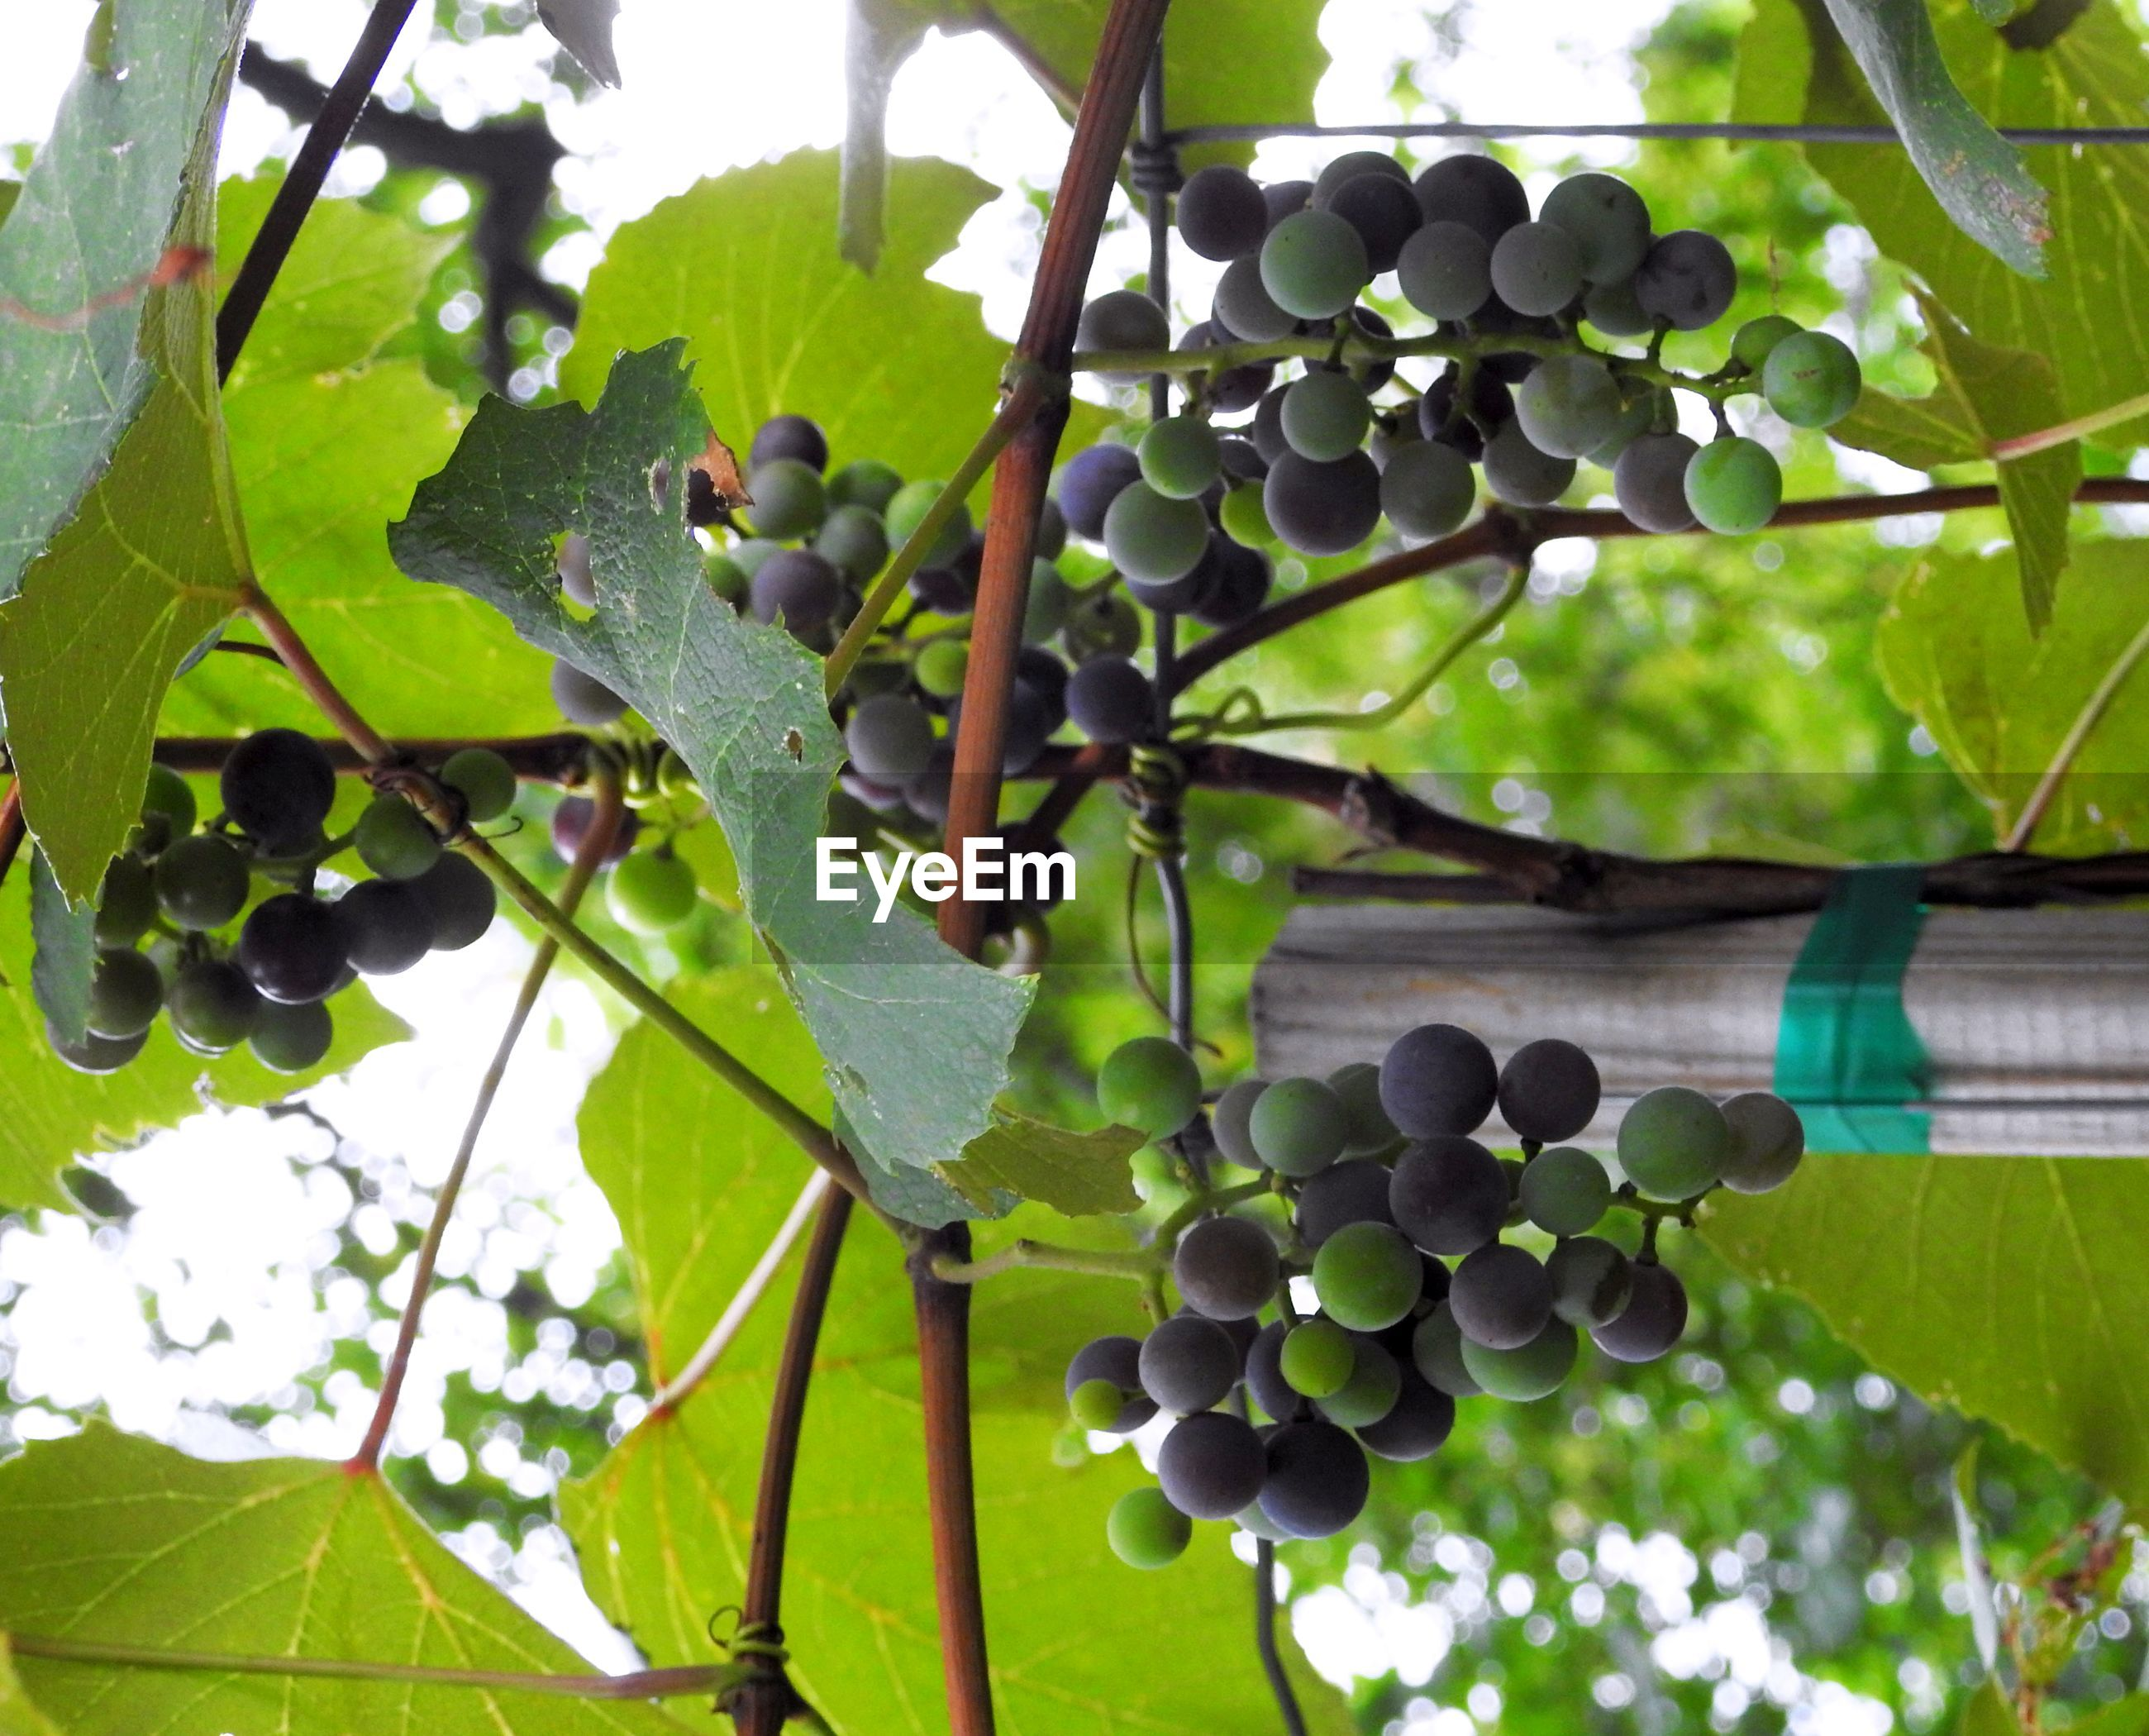 fruit, leaf, green color, growth, close-up, vine, freshness, tropical fruit, food and drink, creeper plant, plant, grape, nature, chainlink fence, sky, branch, vineyard, outdoors, day, beauty in nature, thorn